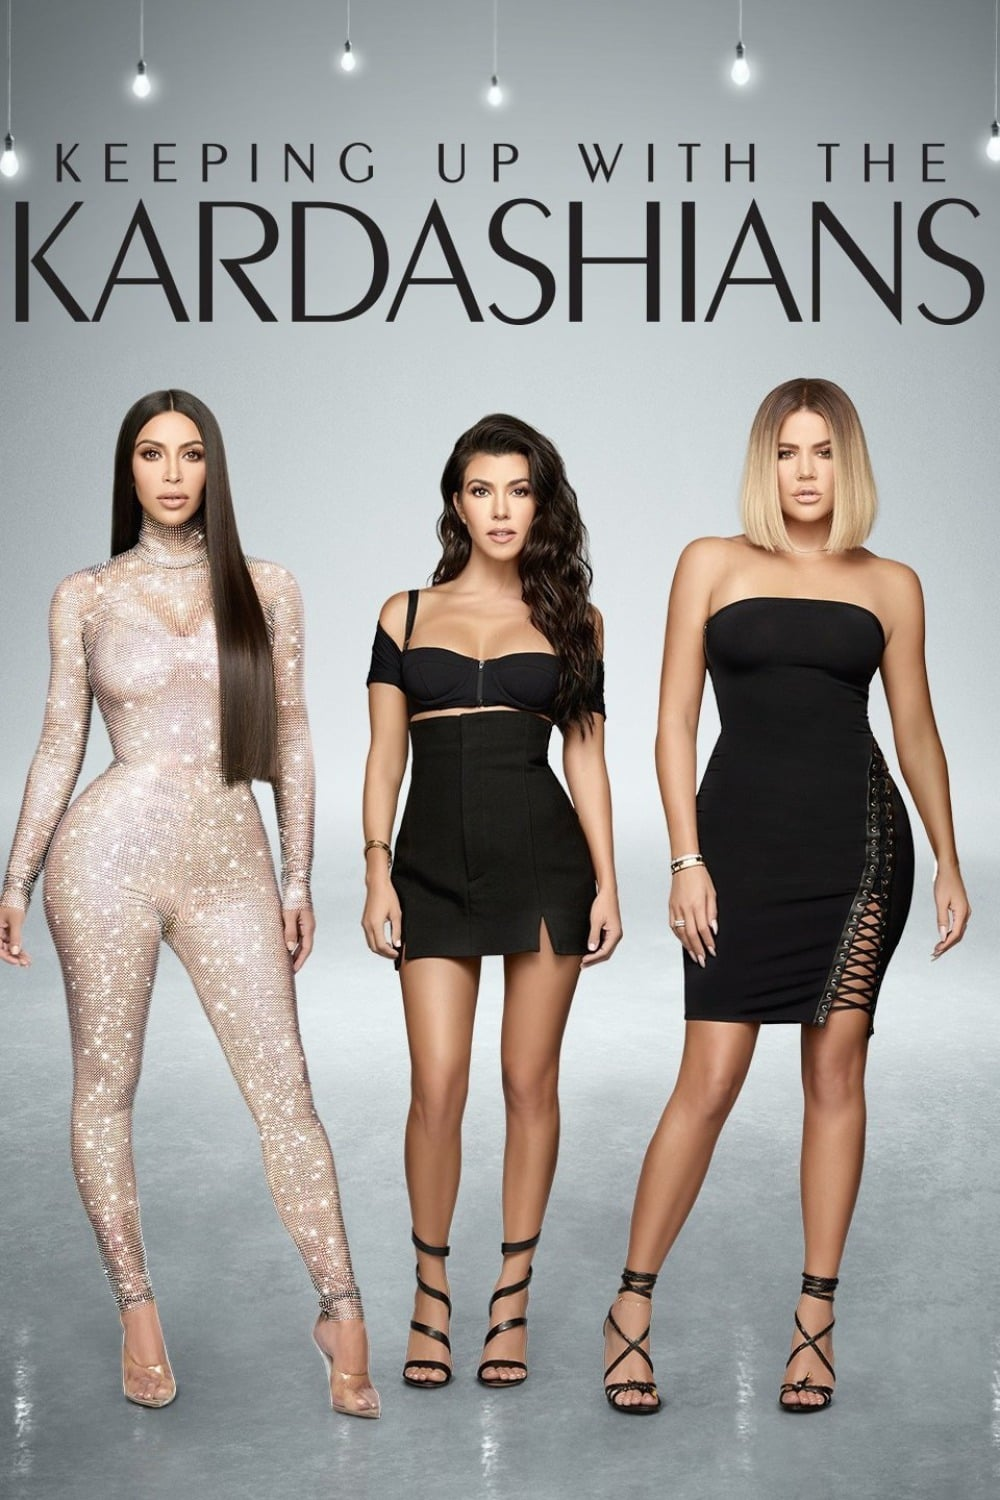 Keeping Up with the Kardashians Season 15